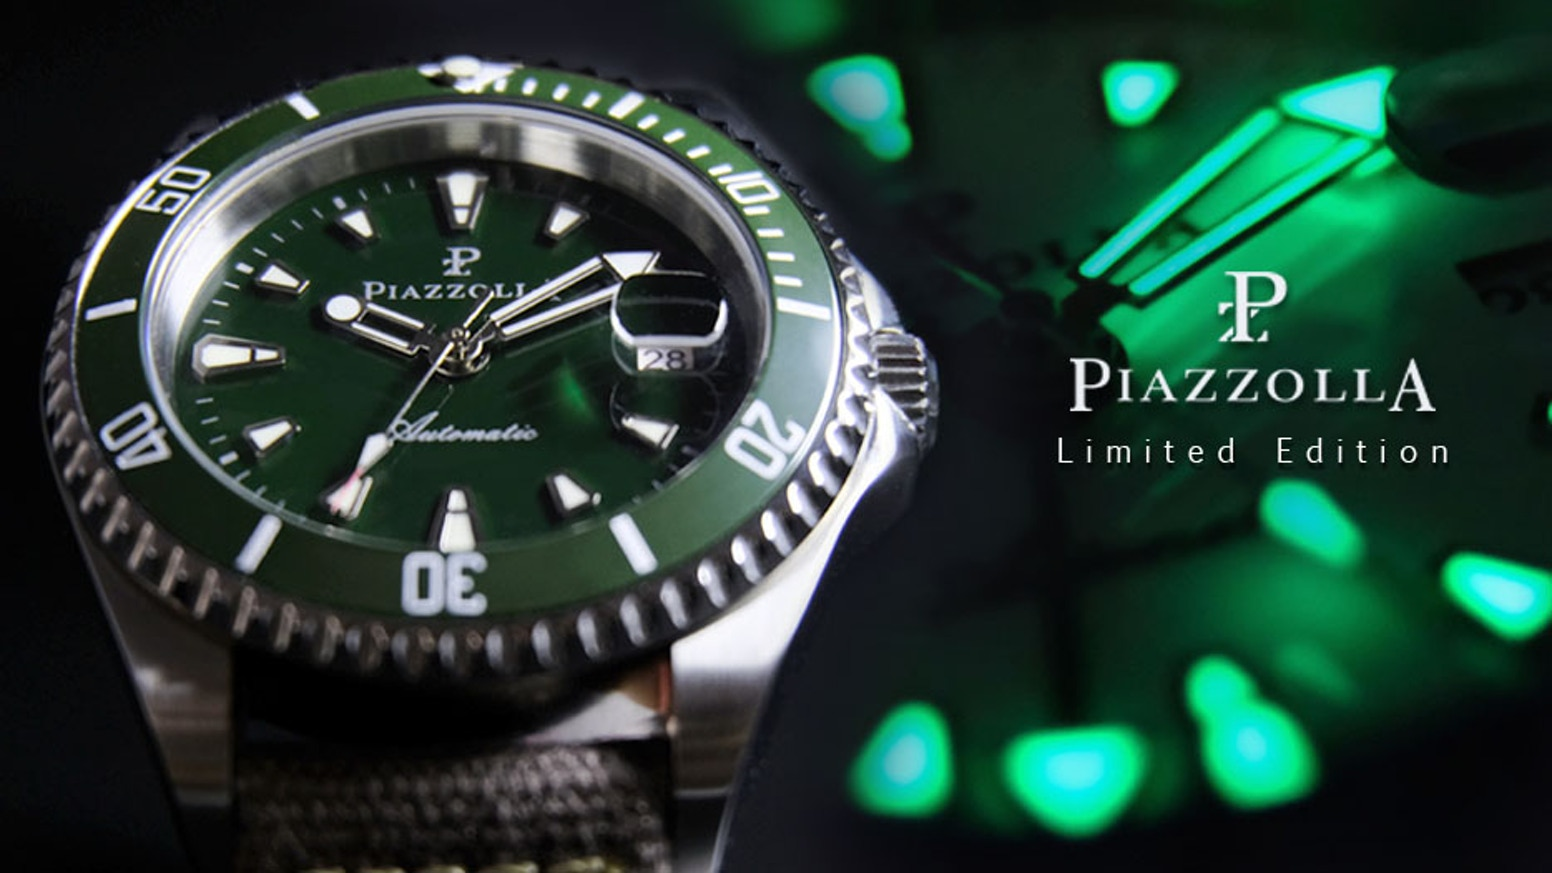 Piazzolla is a mechanical watch designed and A Premium Luxury Lifestyle Watches